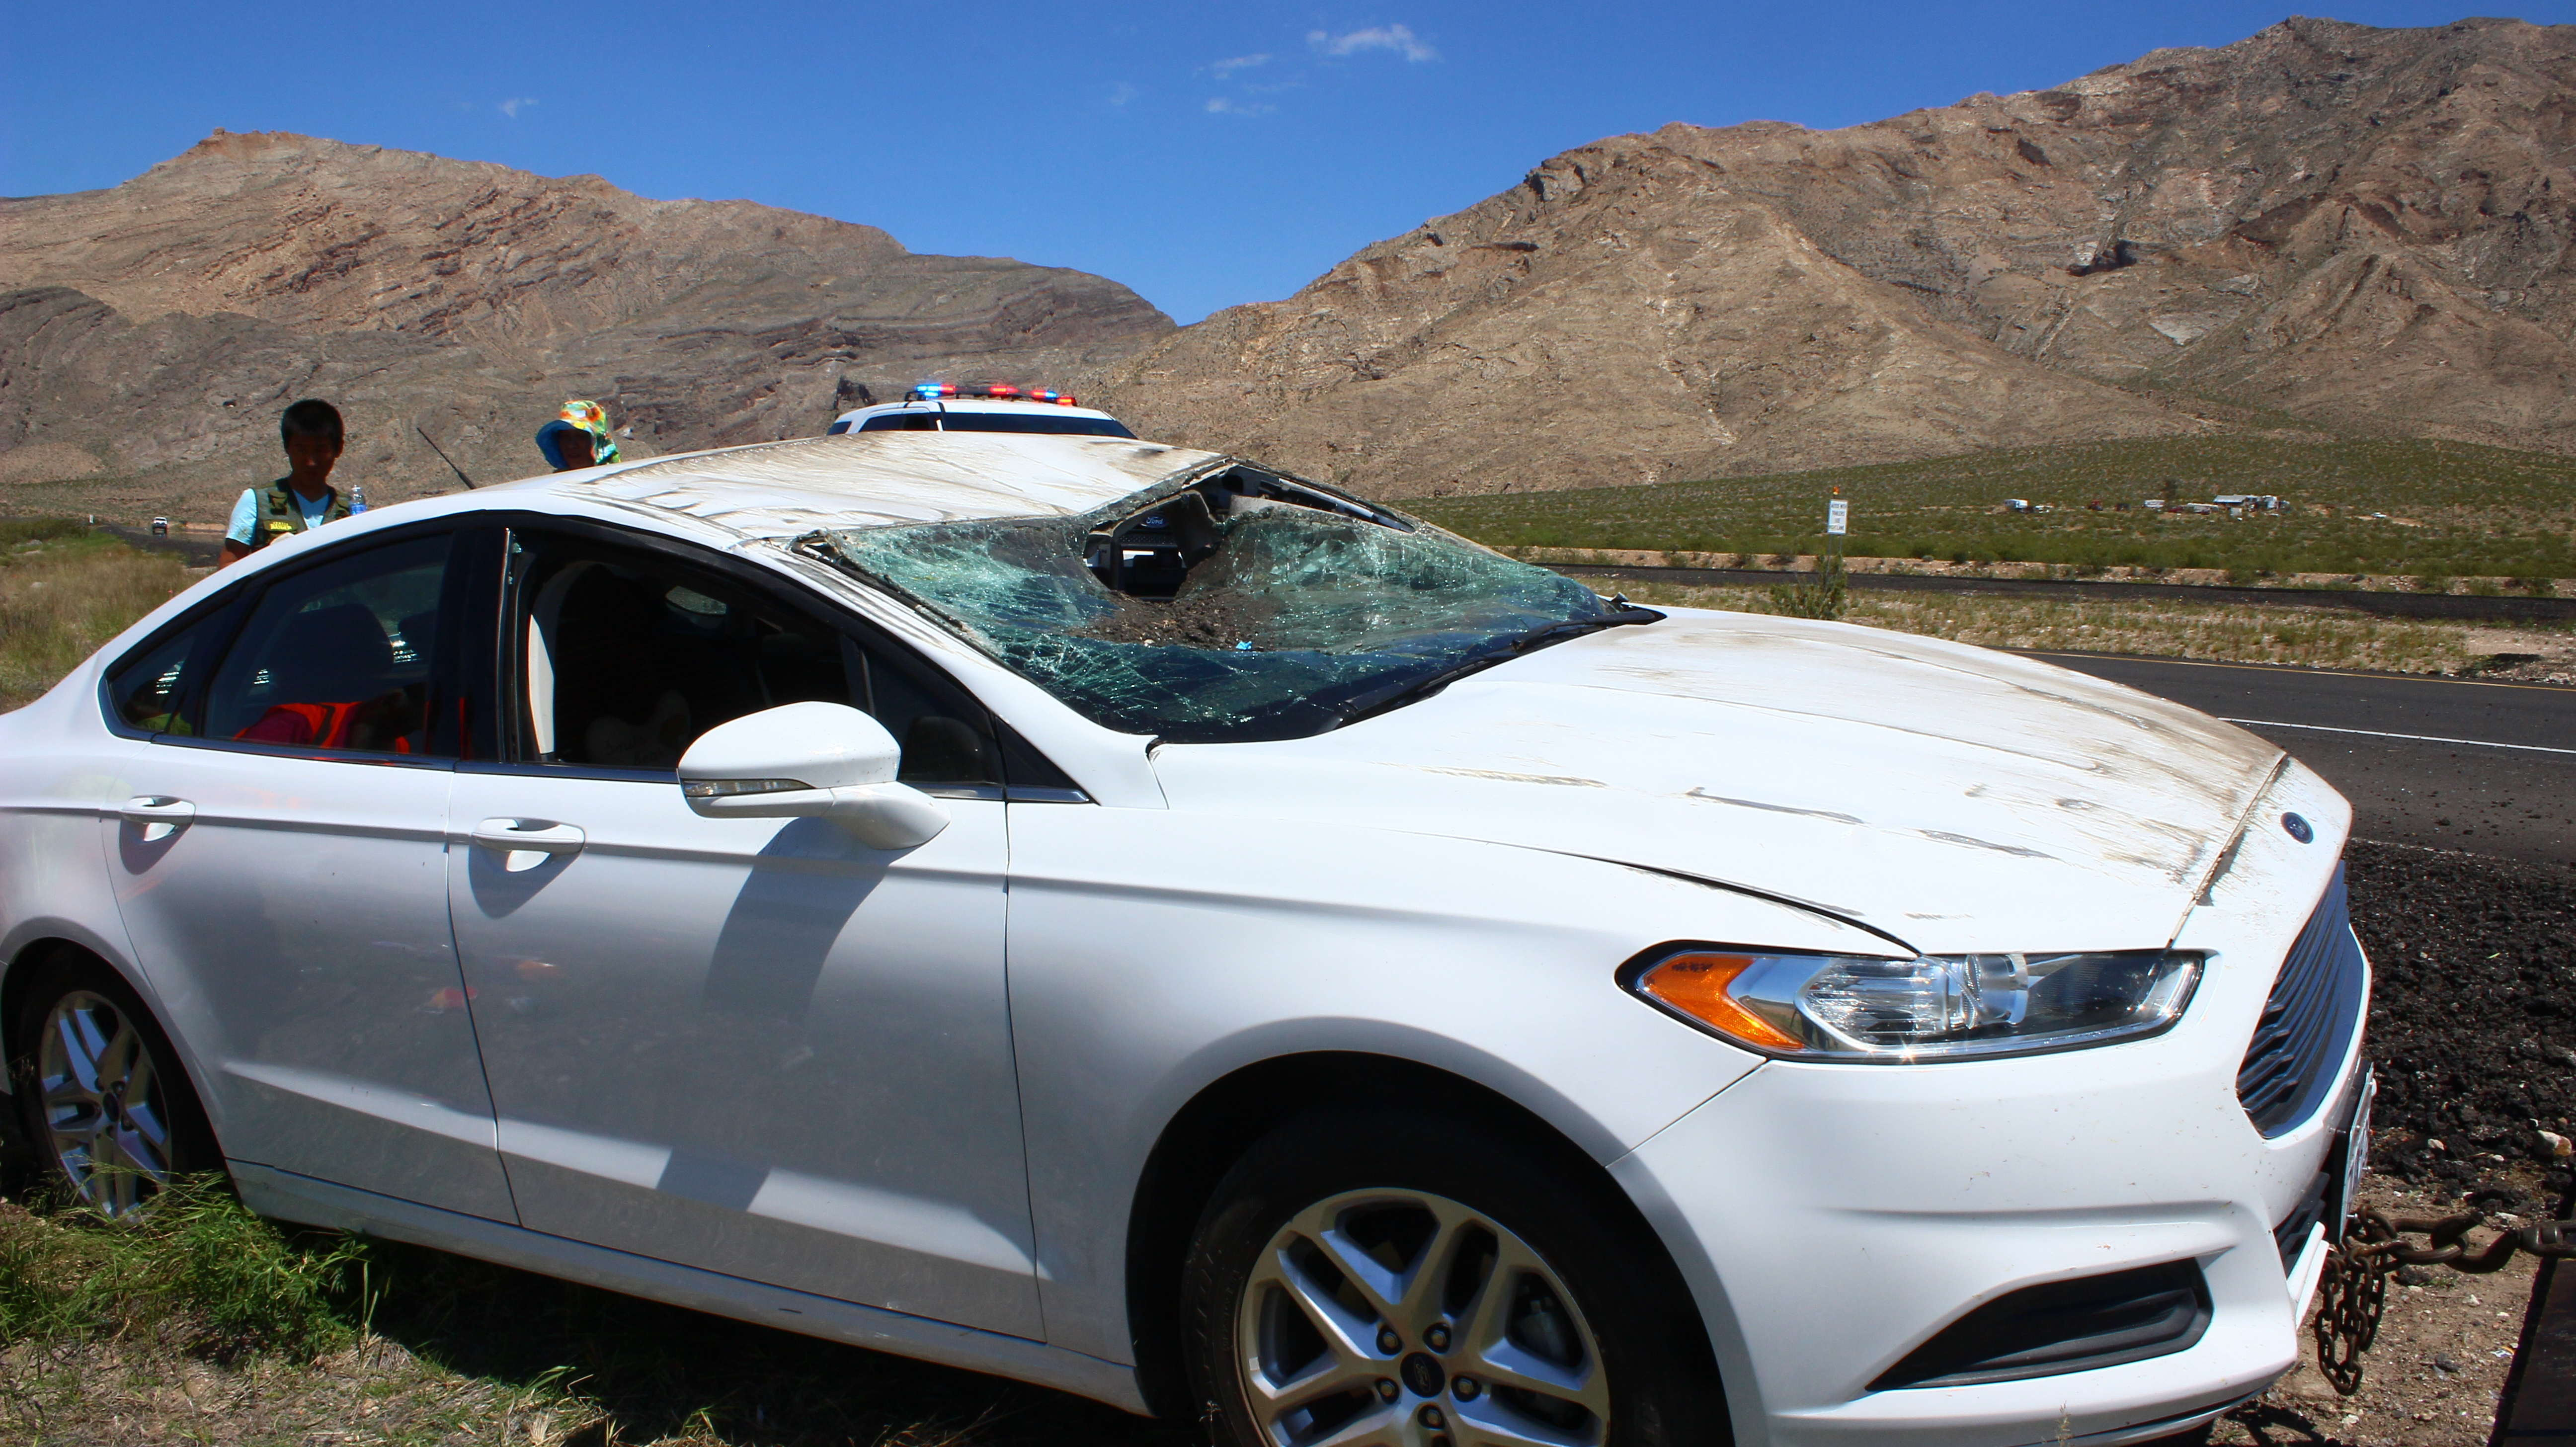 Rollover in Arizona damages vehicle occupants sustain minor